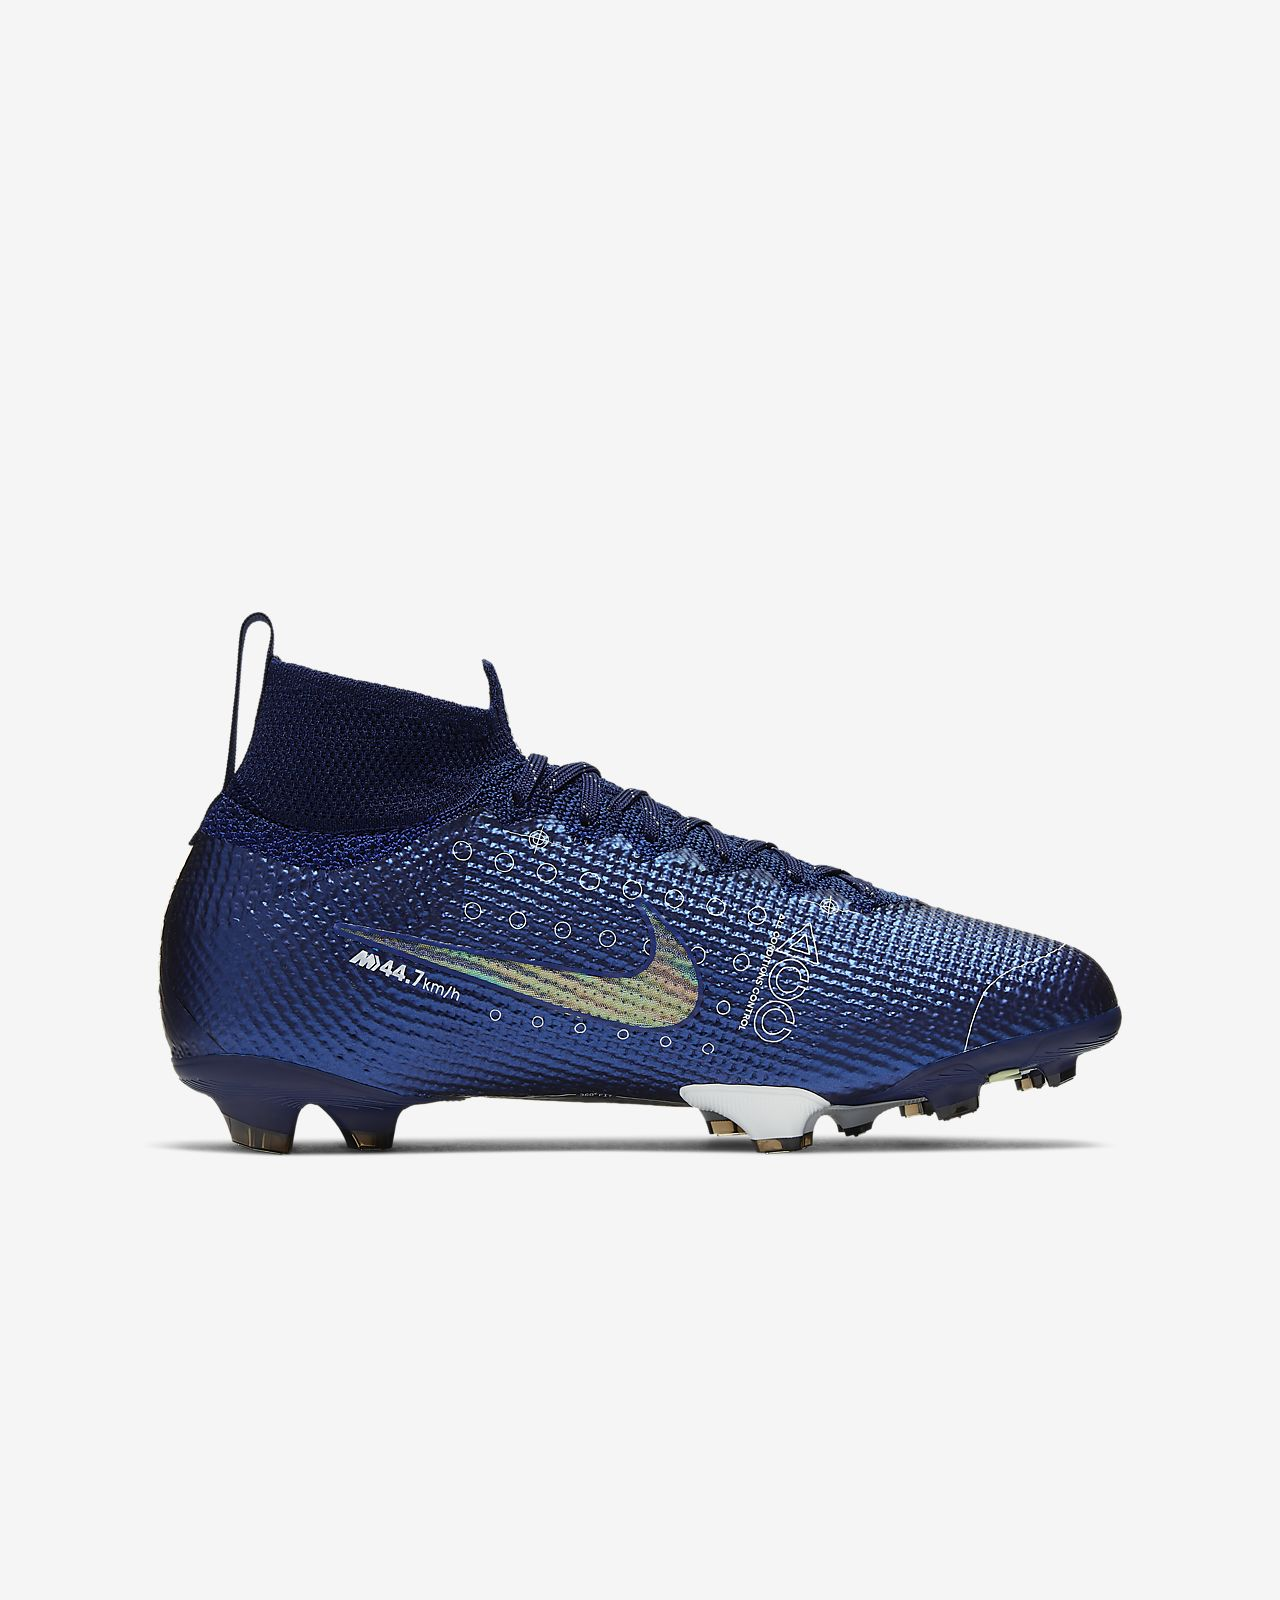 Nike Mercurial Superfly VII Elite FG Football Boots, £160.00